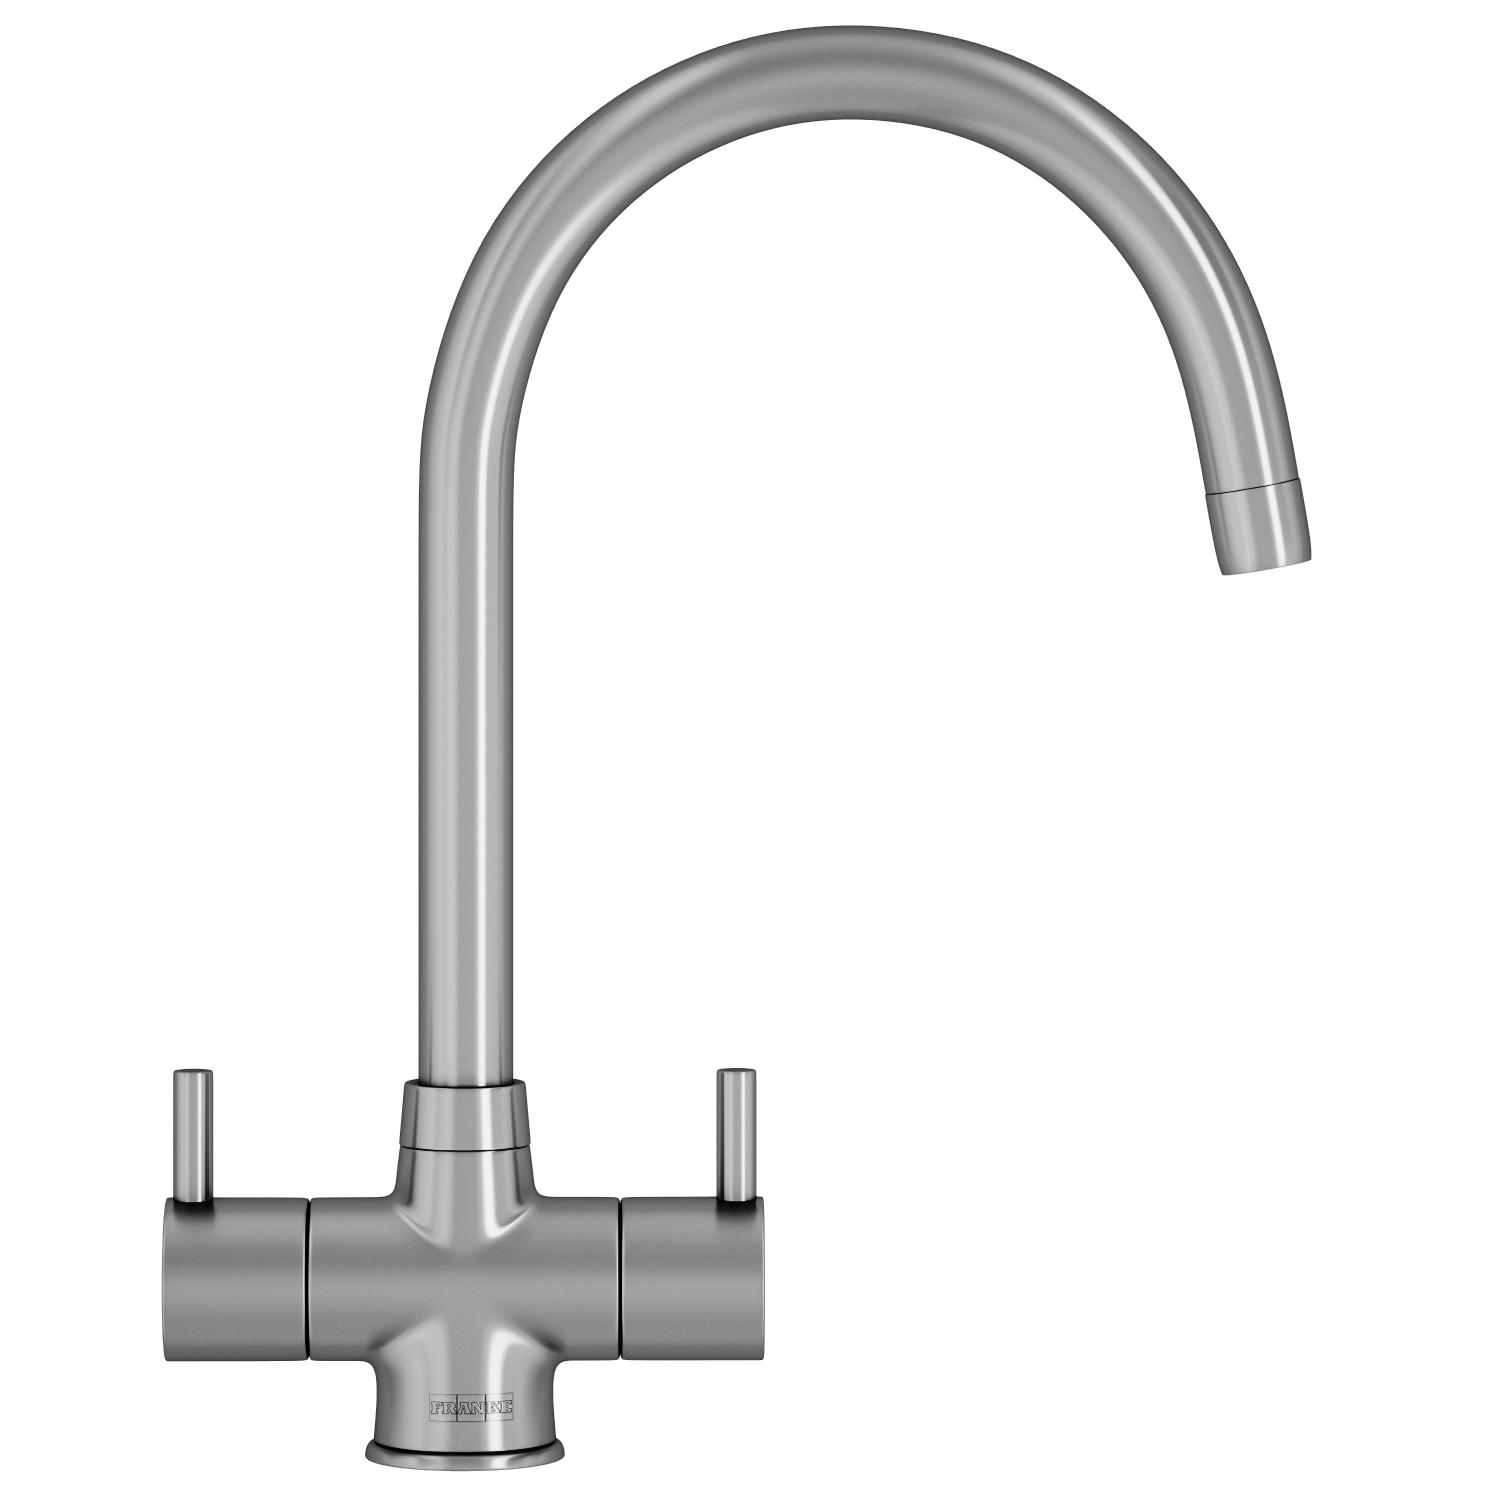 Franke Kitchen Mixer : ... taps kitchen mixer taps franke athena kitchen sink mixer tap silksteel